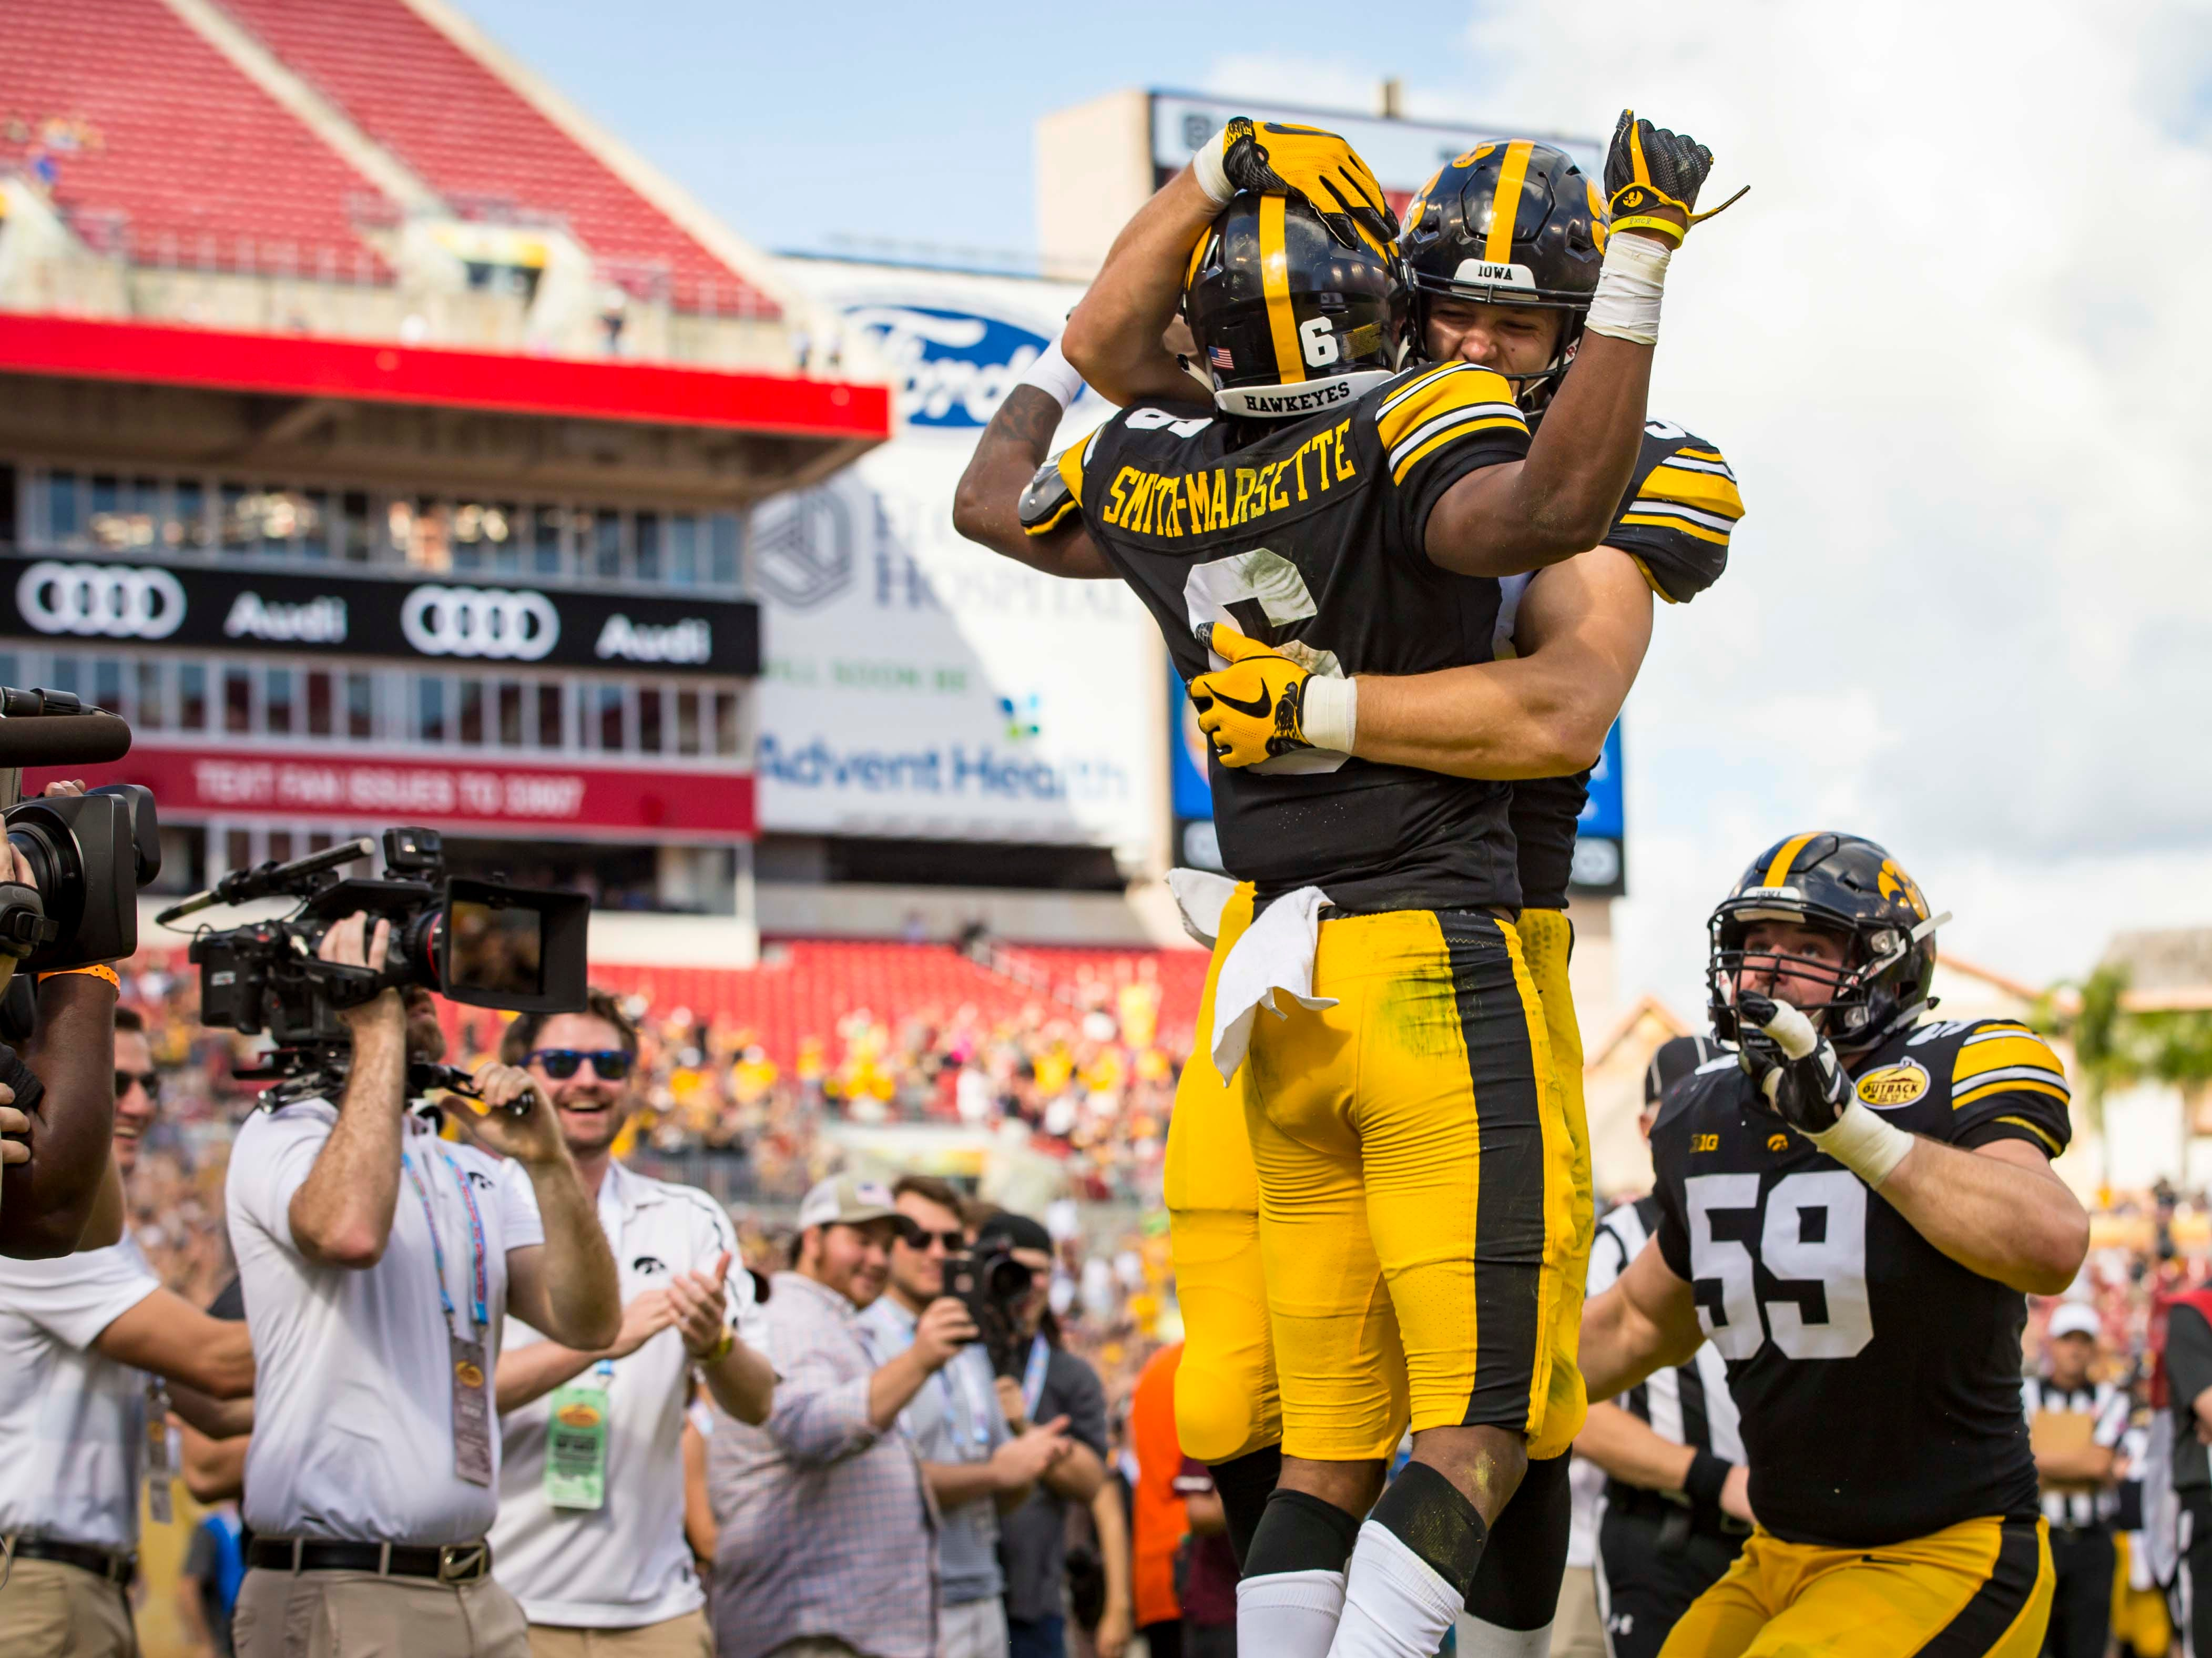 Iowa's wide receiver Ihmir Smith-Marsette celebrates a touchdown in the first half at the Outback Bowl Tues., Jan. 1, 2019, at Raymond James Stadium in Tampa, Florida. Iowa takes a 17-6 lead over Miss. St. into halftime.